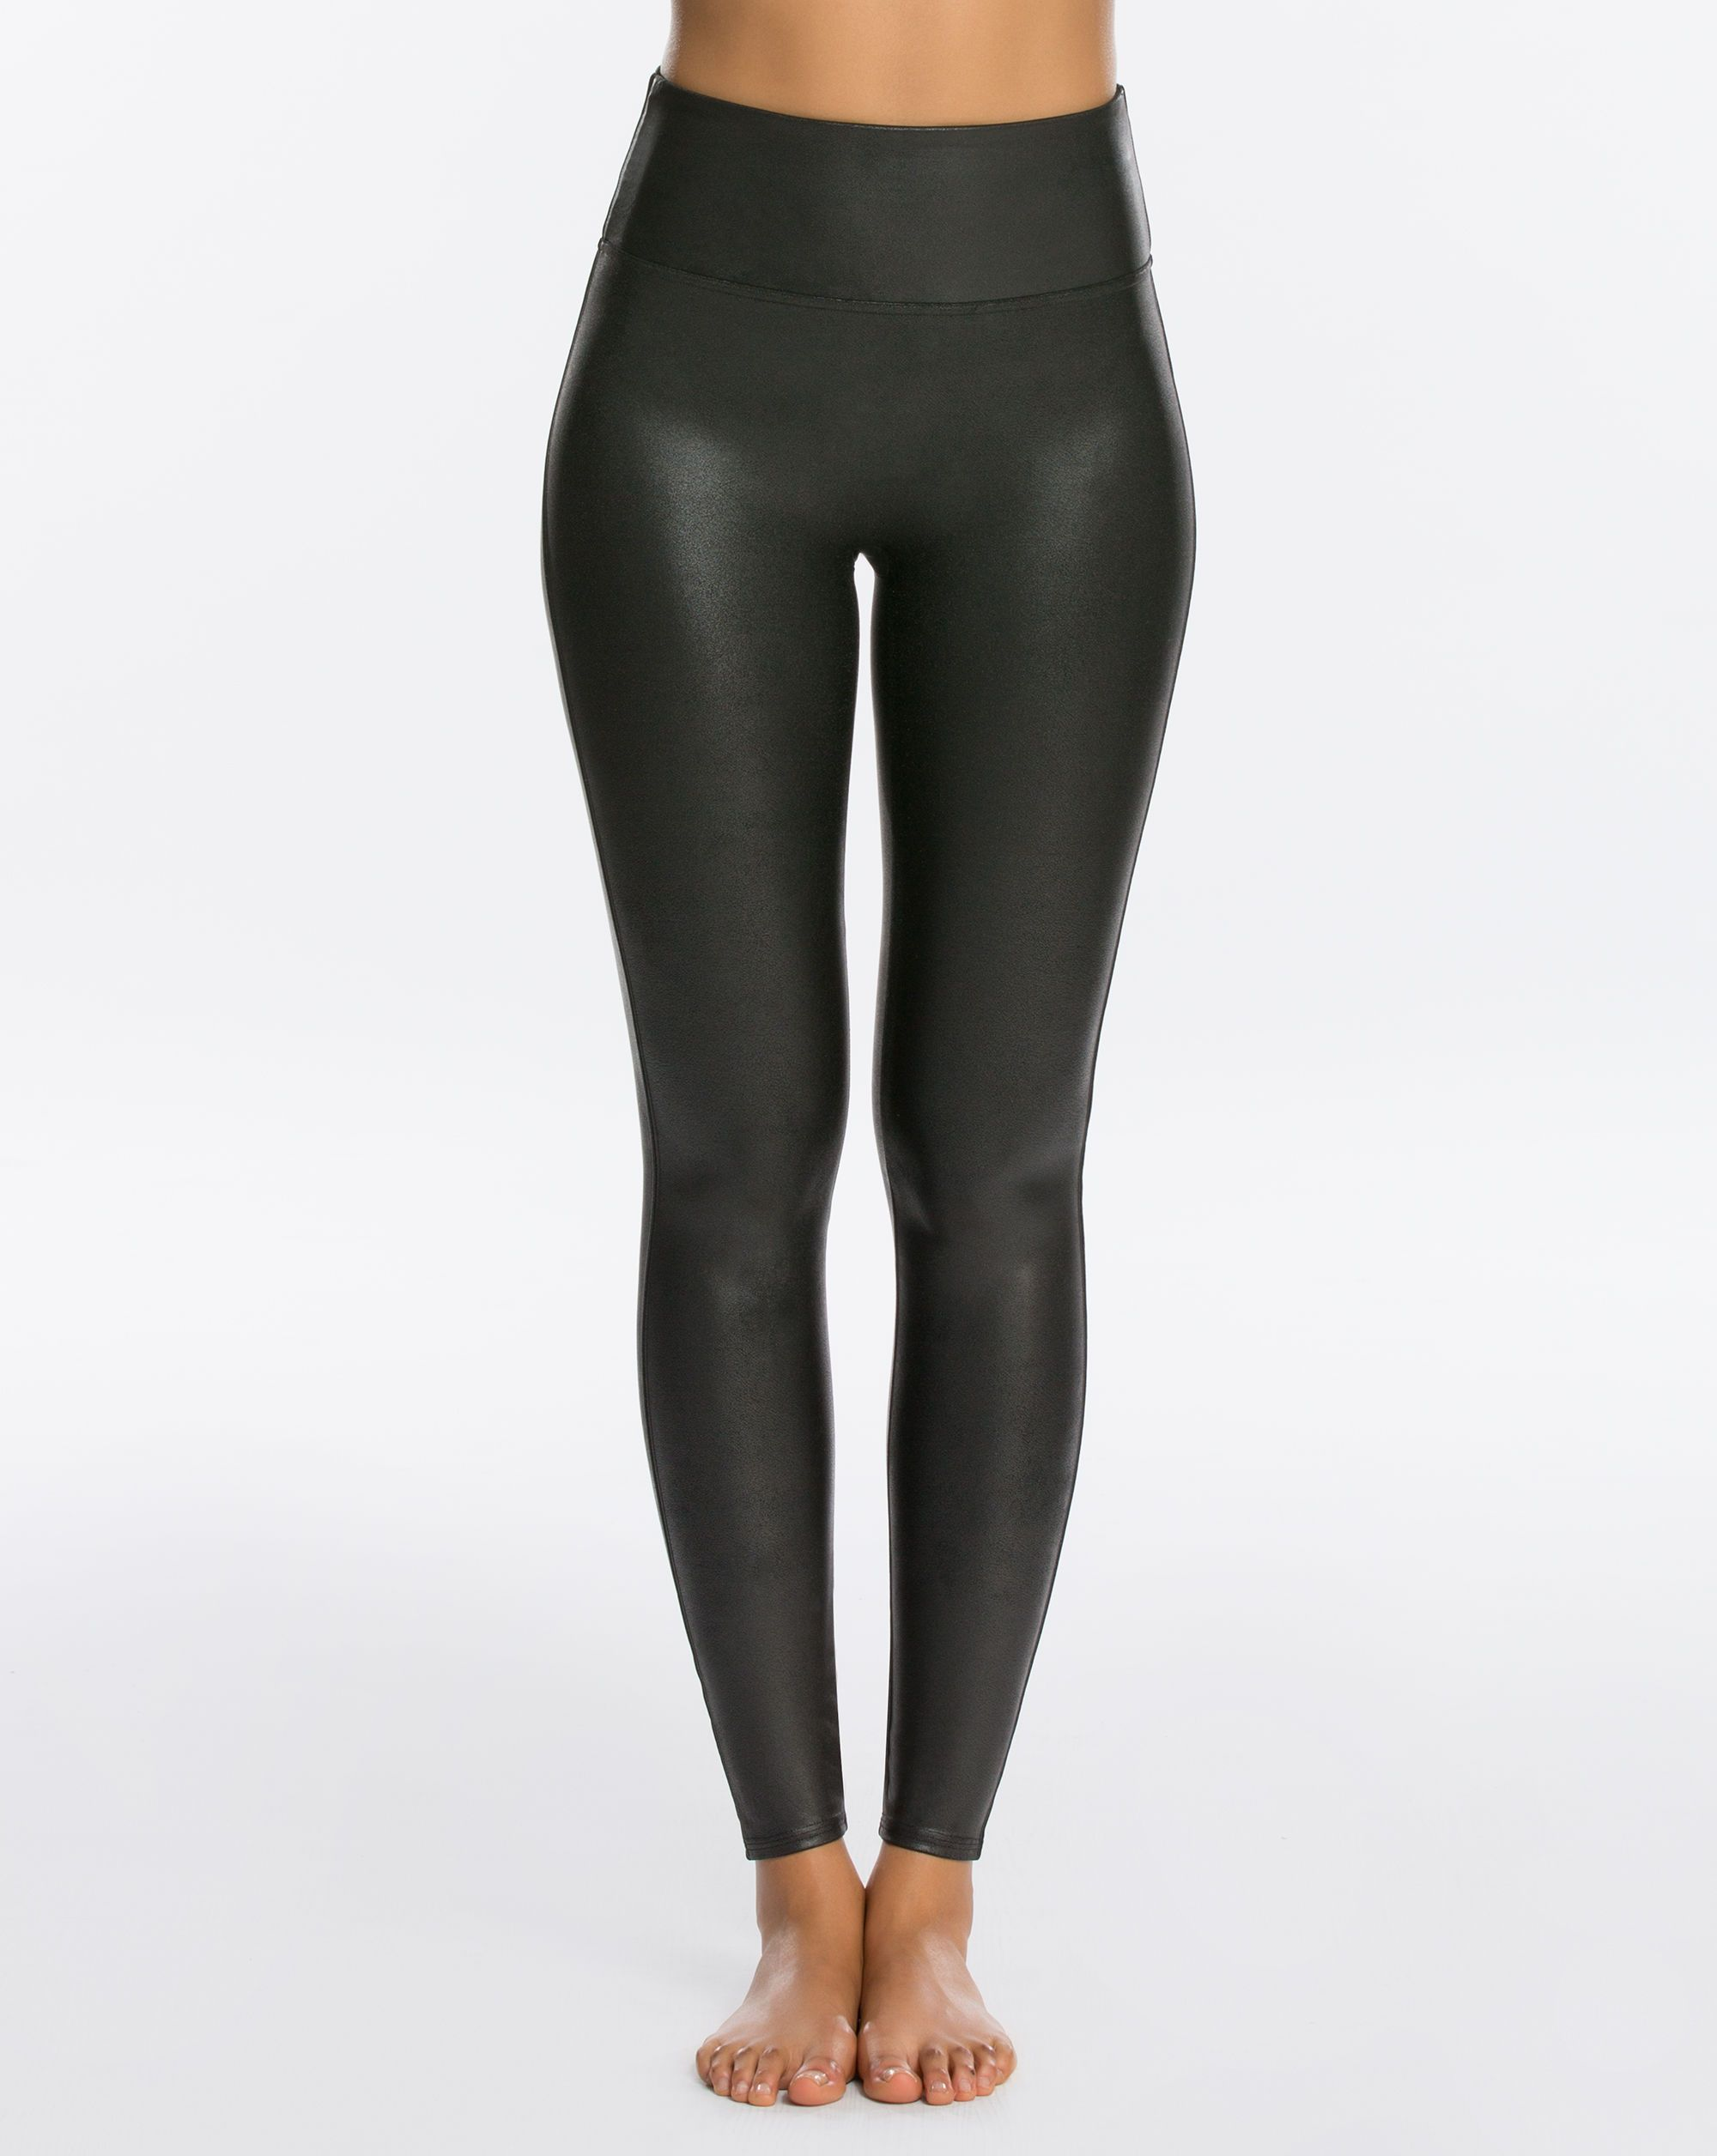 #11 Versatile Leggings - These my friends, will change your life. I live in my Spanx Faux Leather Leggings when I travel. Why? Because they moonlight as real pants and feel like loungewear. These are my go to pants for long tours, nights out and just about everything in between. BONUS: they suck your tummy in after all those chocolate croissants you've been eating while on your trip to Paris. Oh sorry, I started talking to myself.